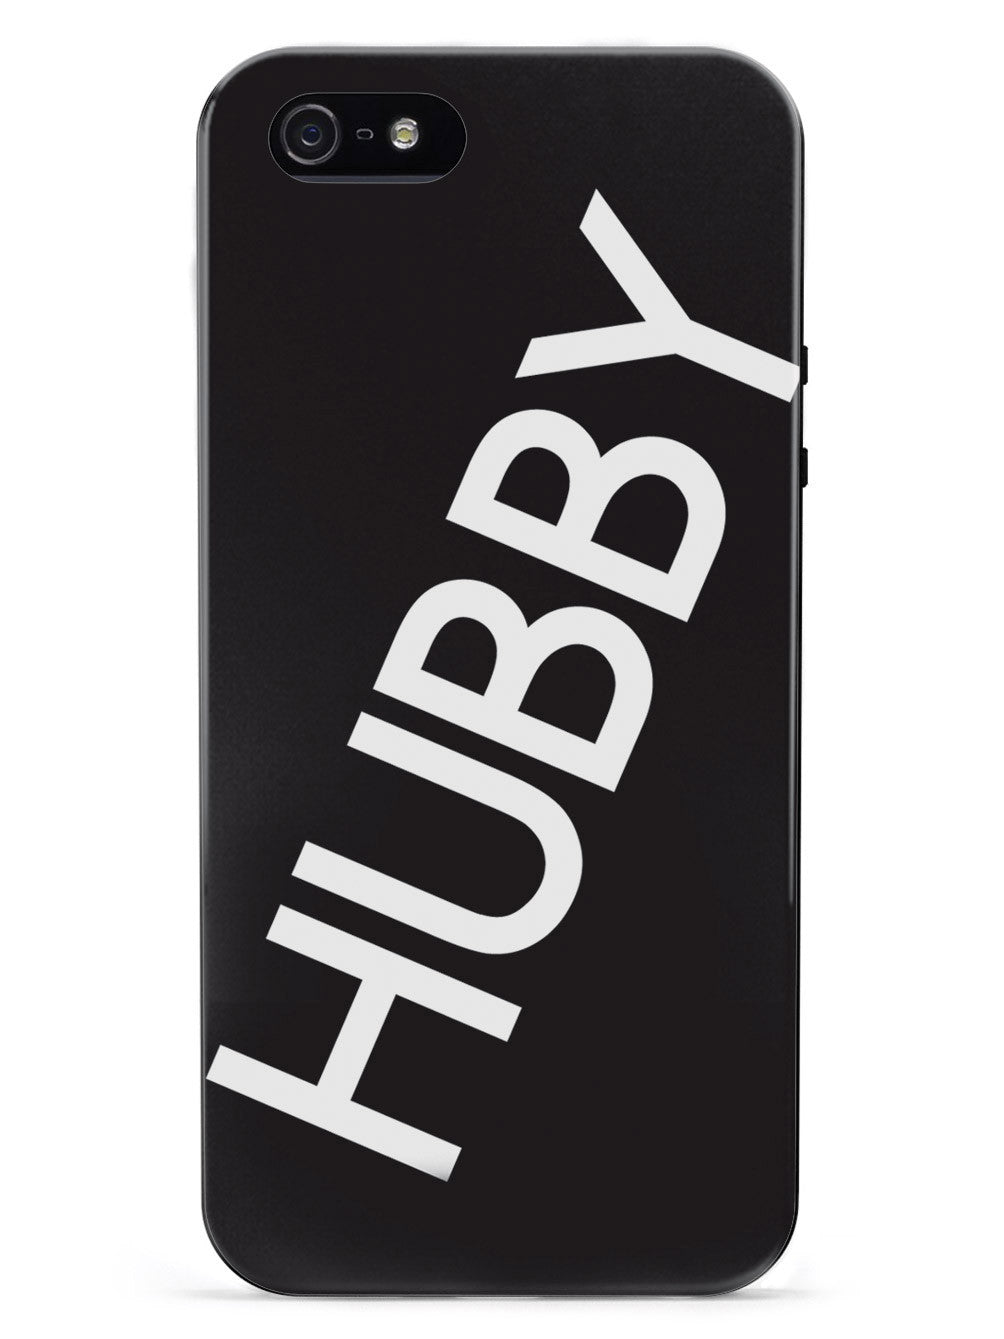 Hubby and Wifey - Hubby Case